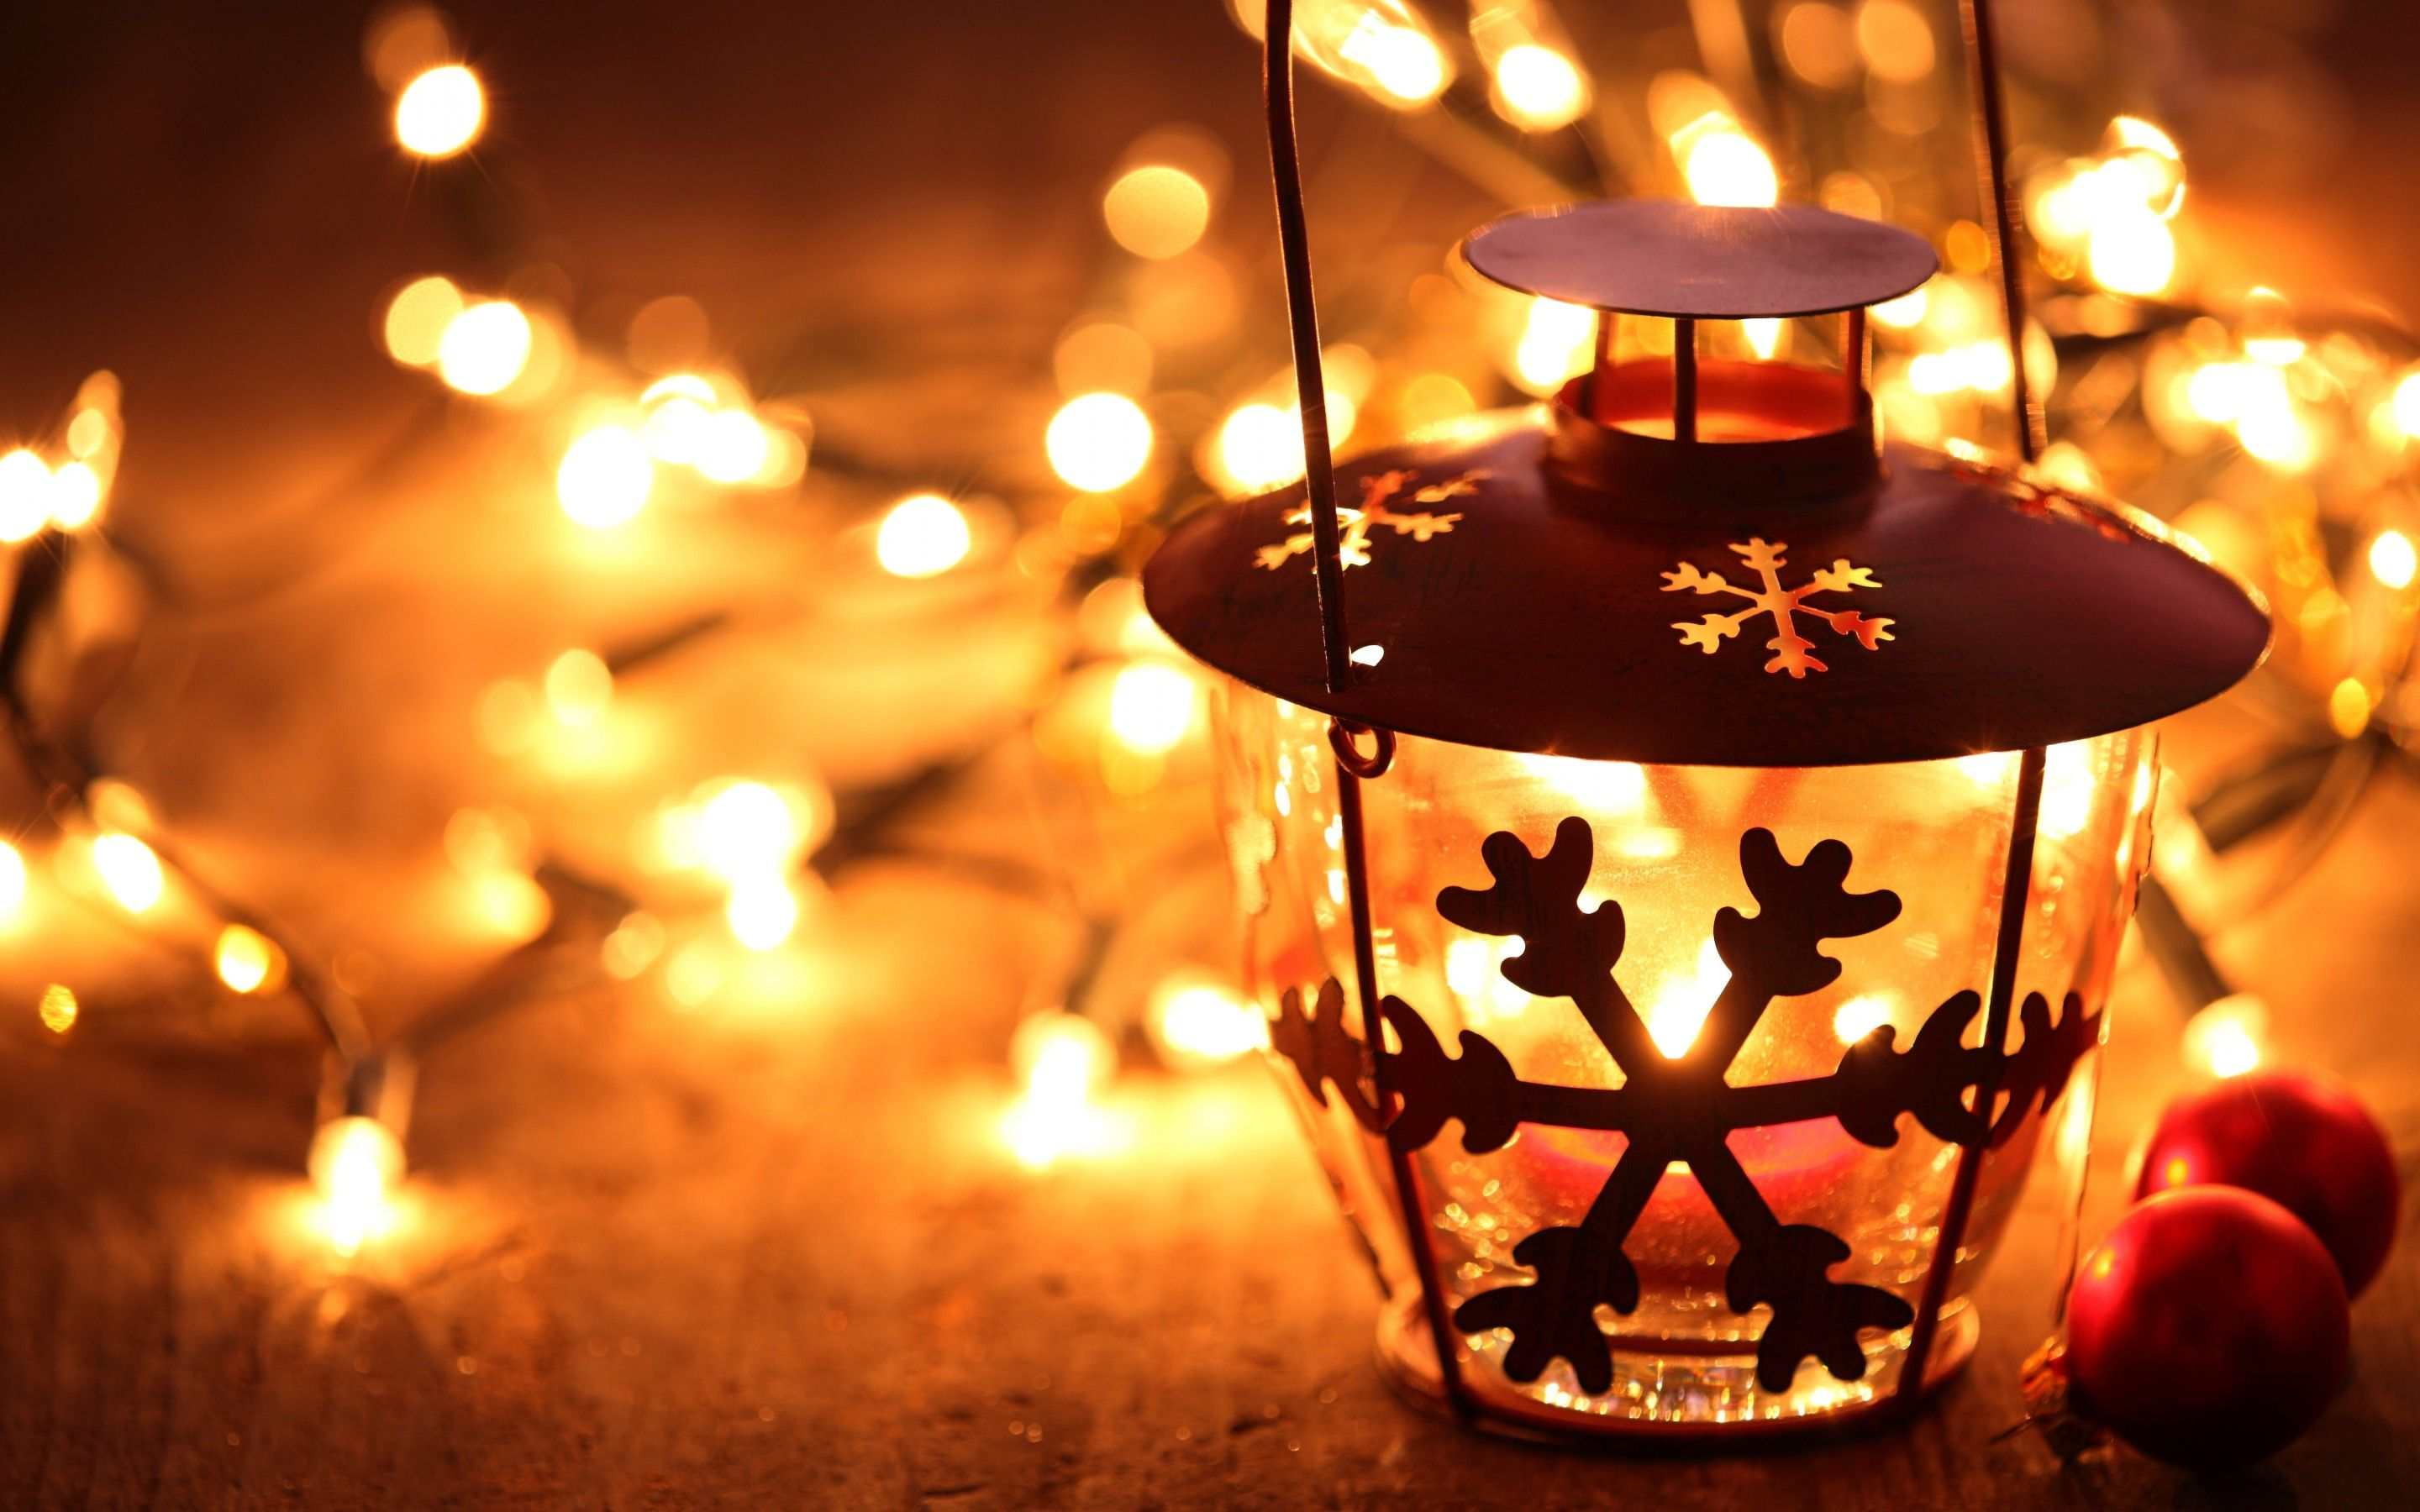 snowflake lantern on wooden floor with yellow candle light